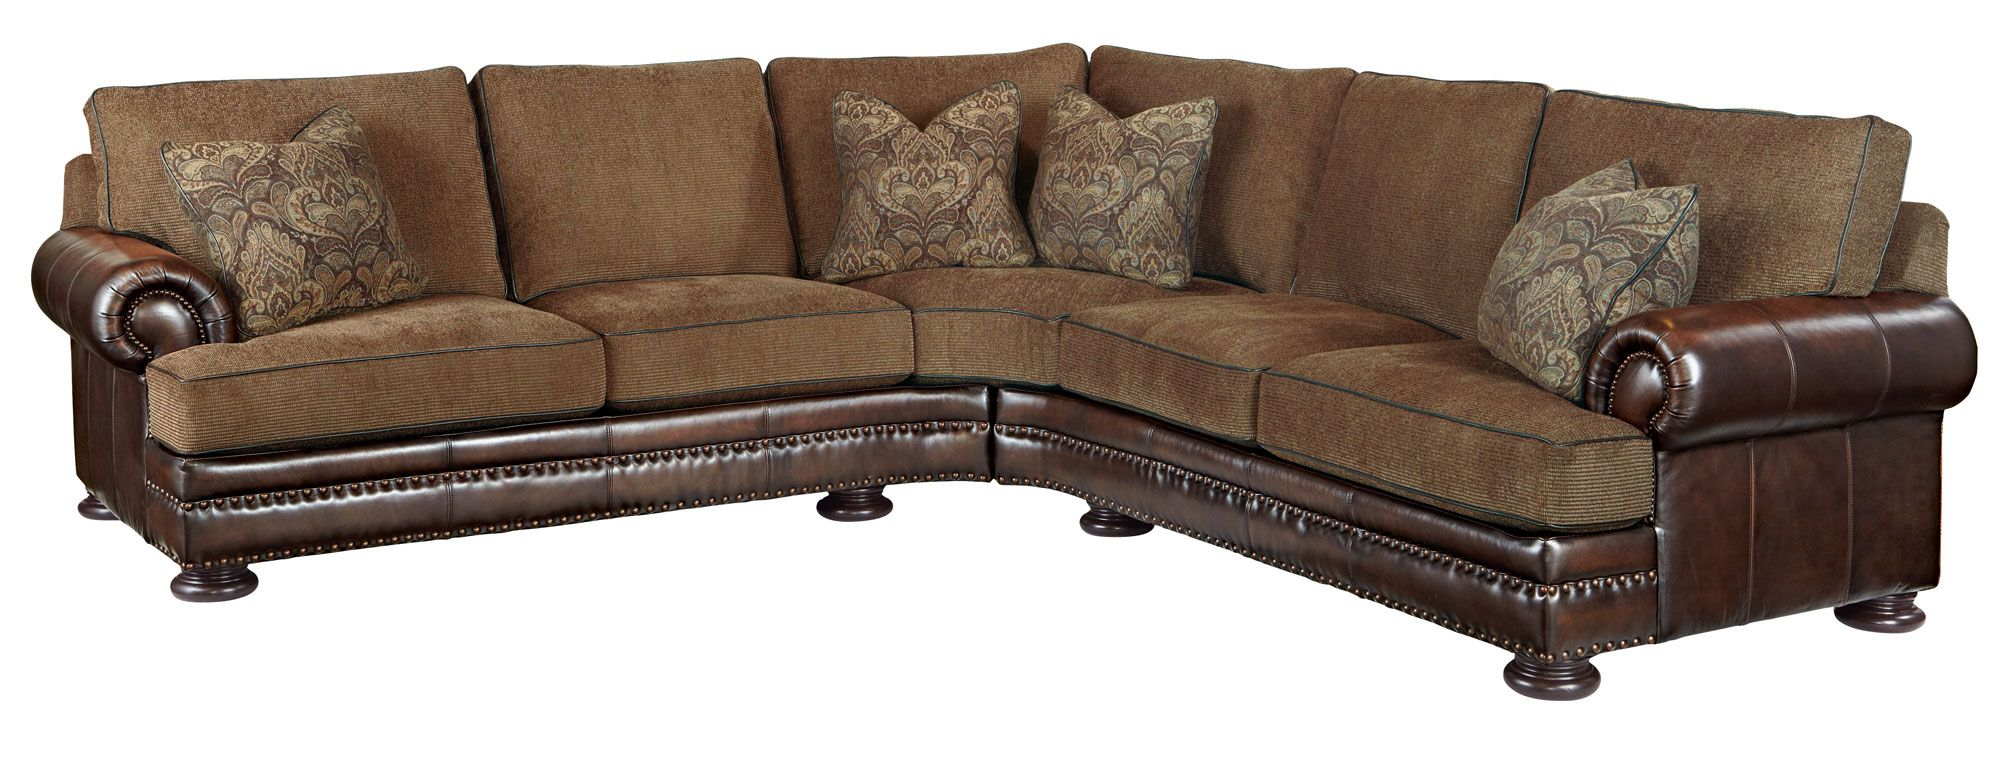 Traditional Sectional L Shaped Sofa Design Ideas For Living Room Furniture Wi